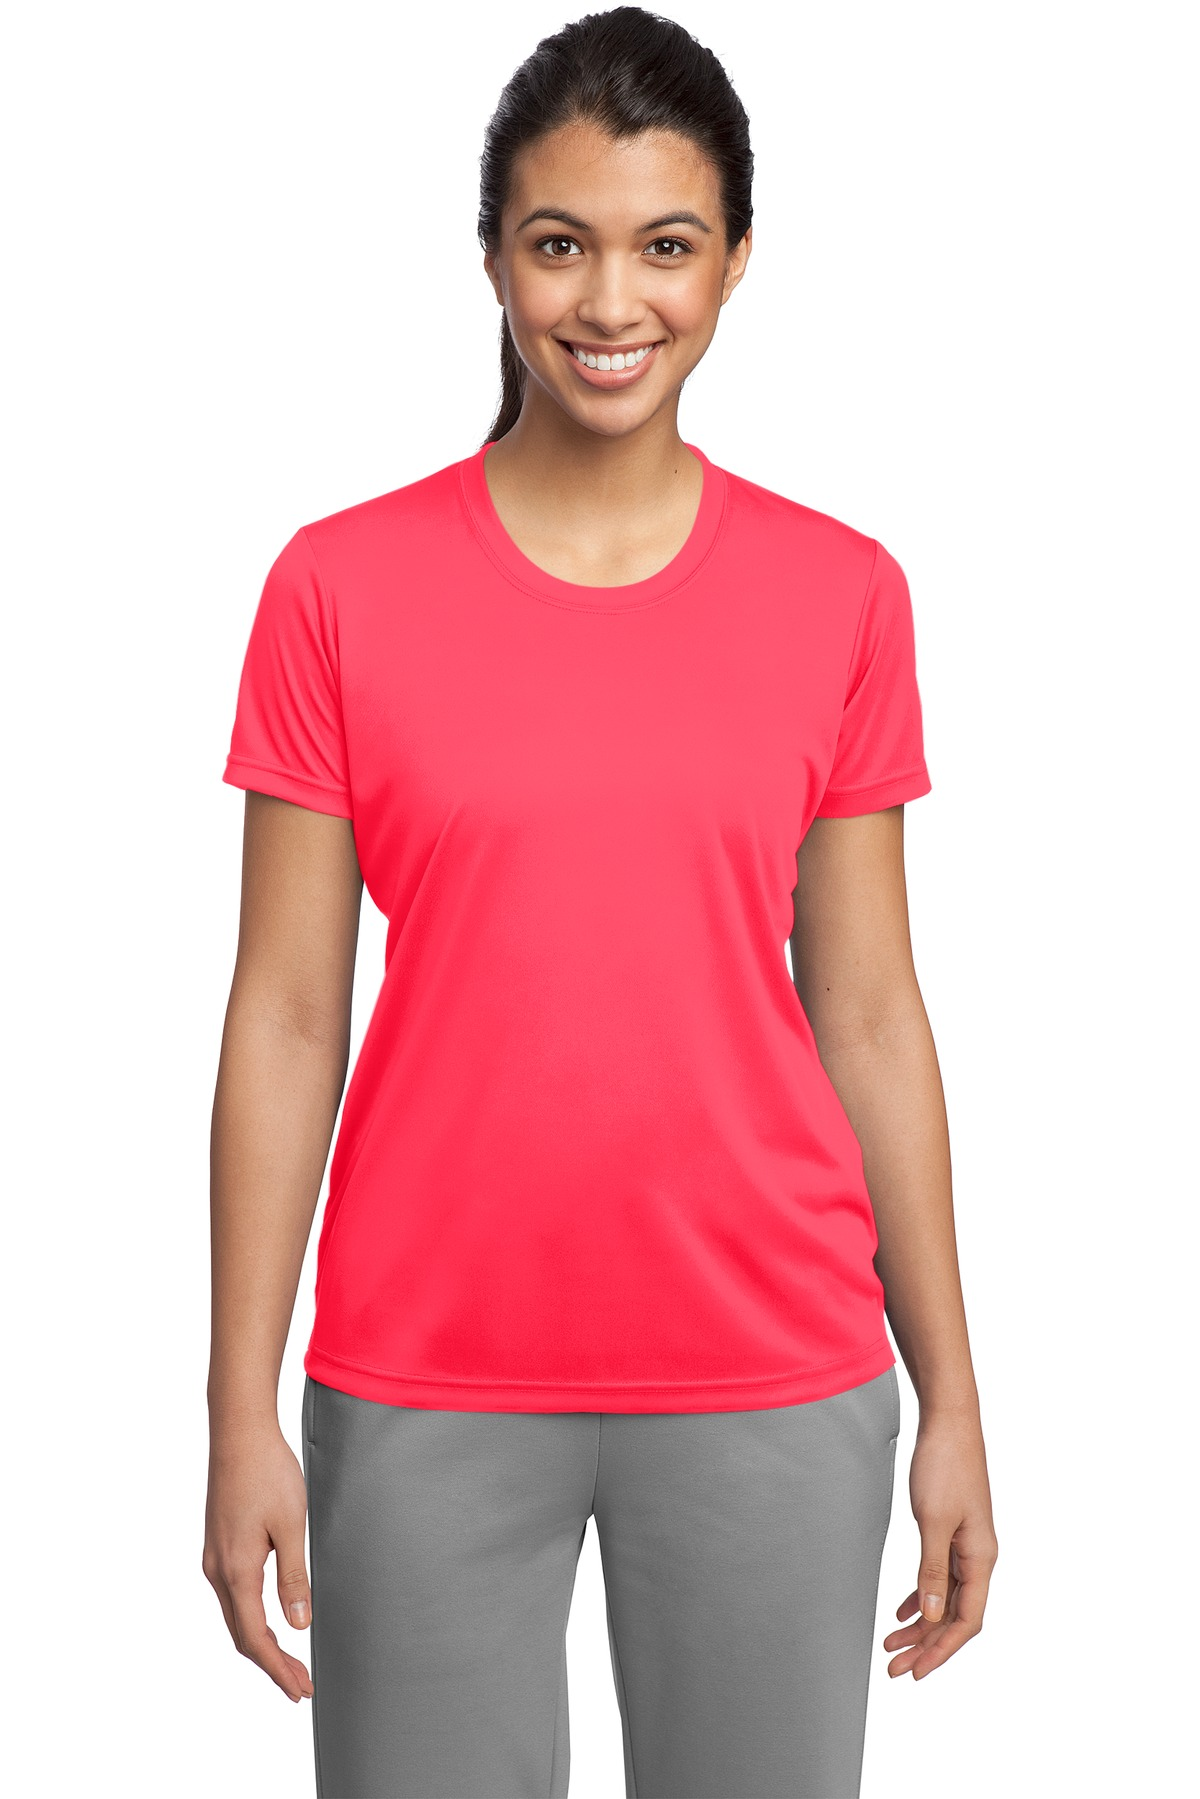 Sport-Tek ®  Ladies PosiCharge ®  Competitor™ Tee. LST350 - Hot Coral